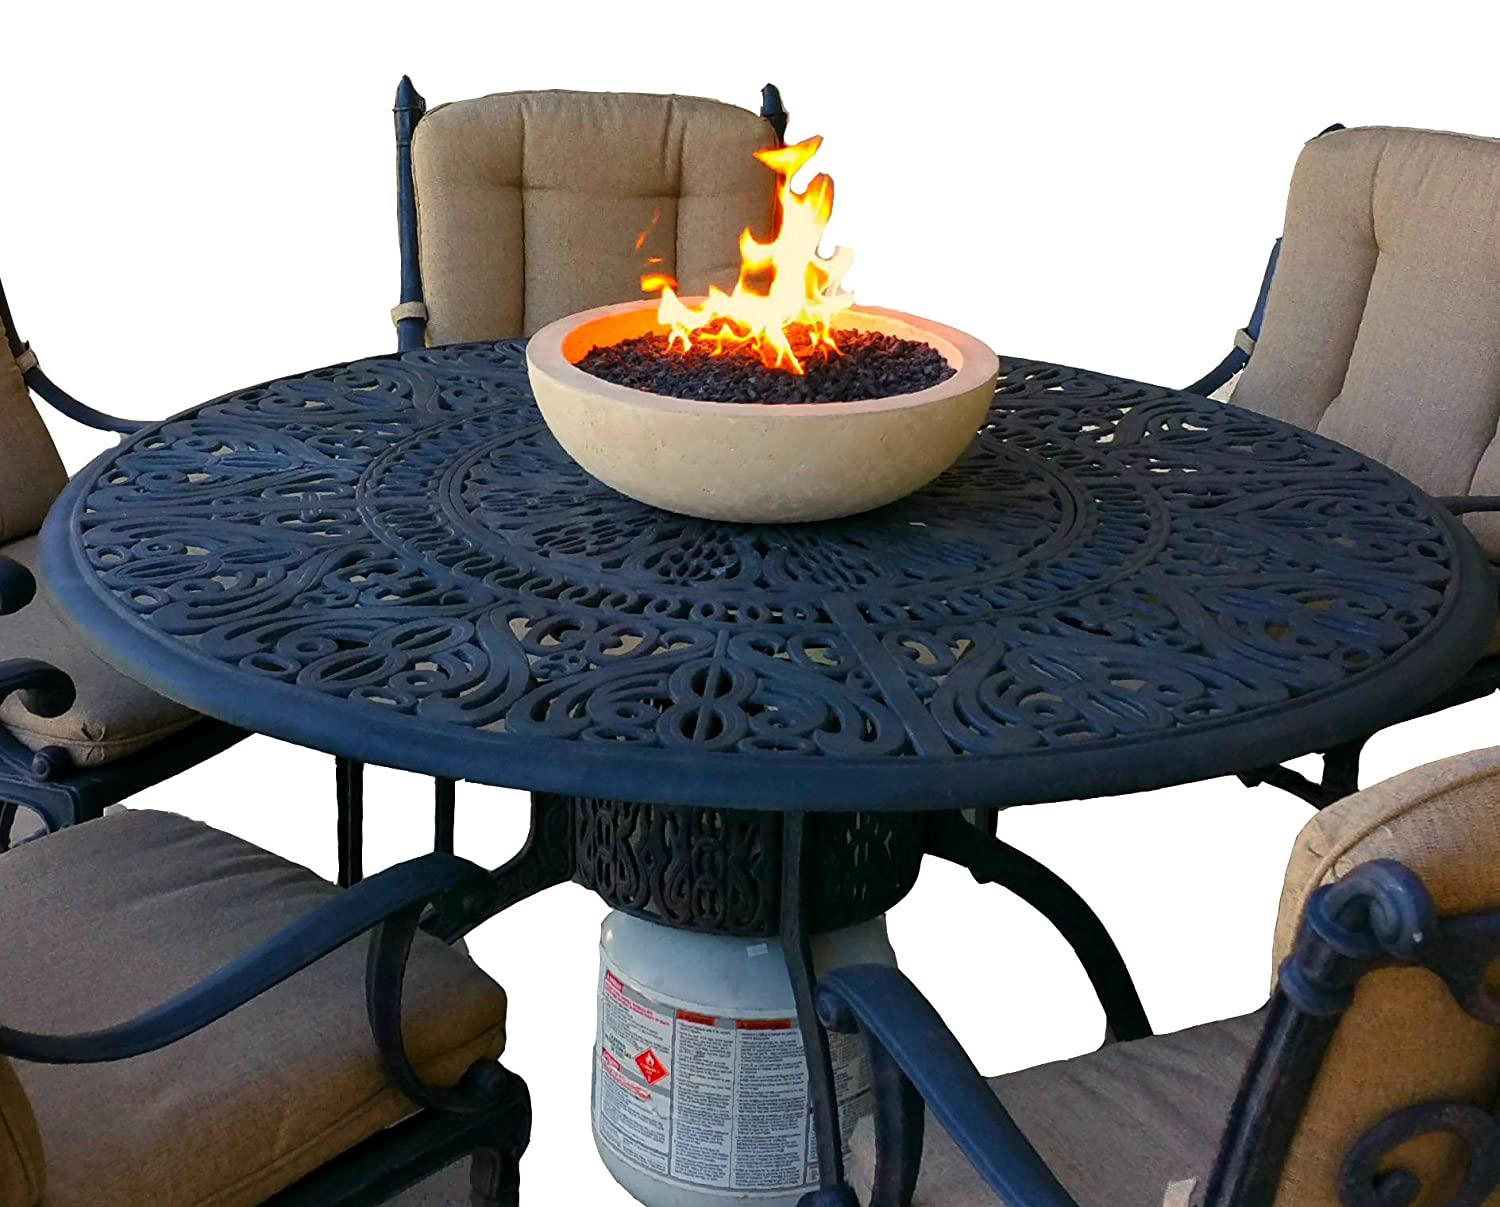 Cleaning Fire Pit : Cleaning propane fireplace burner fire place heater